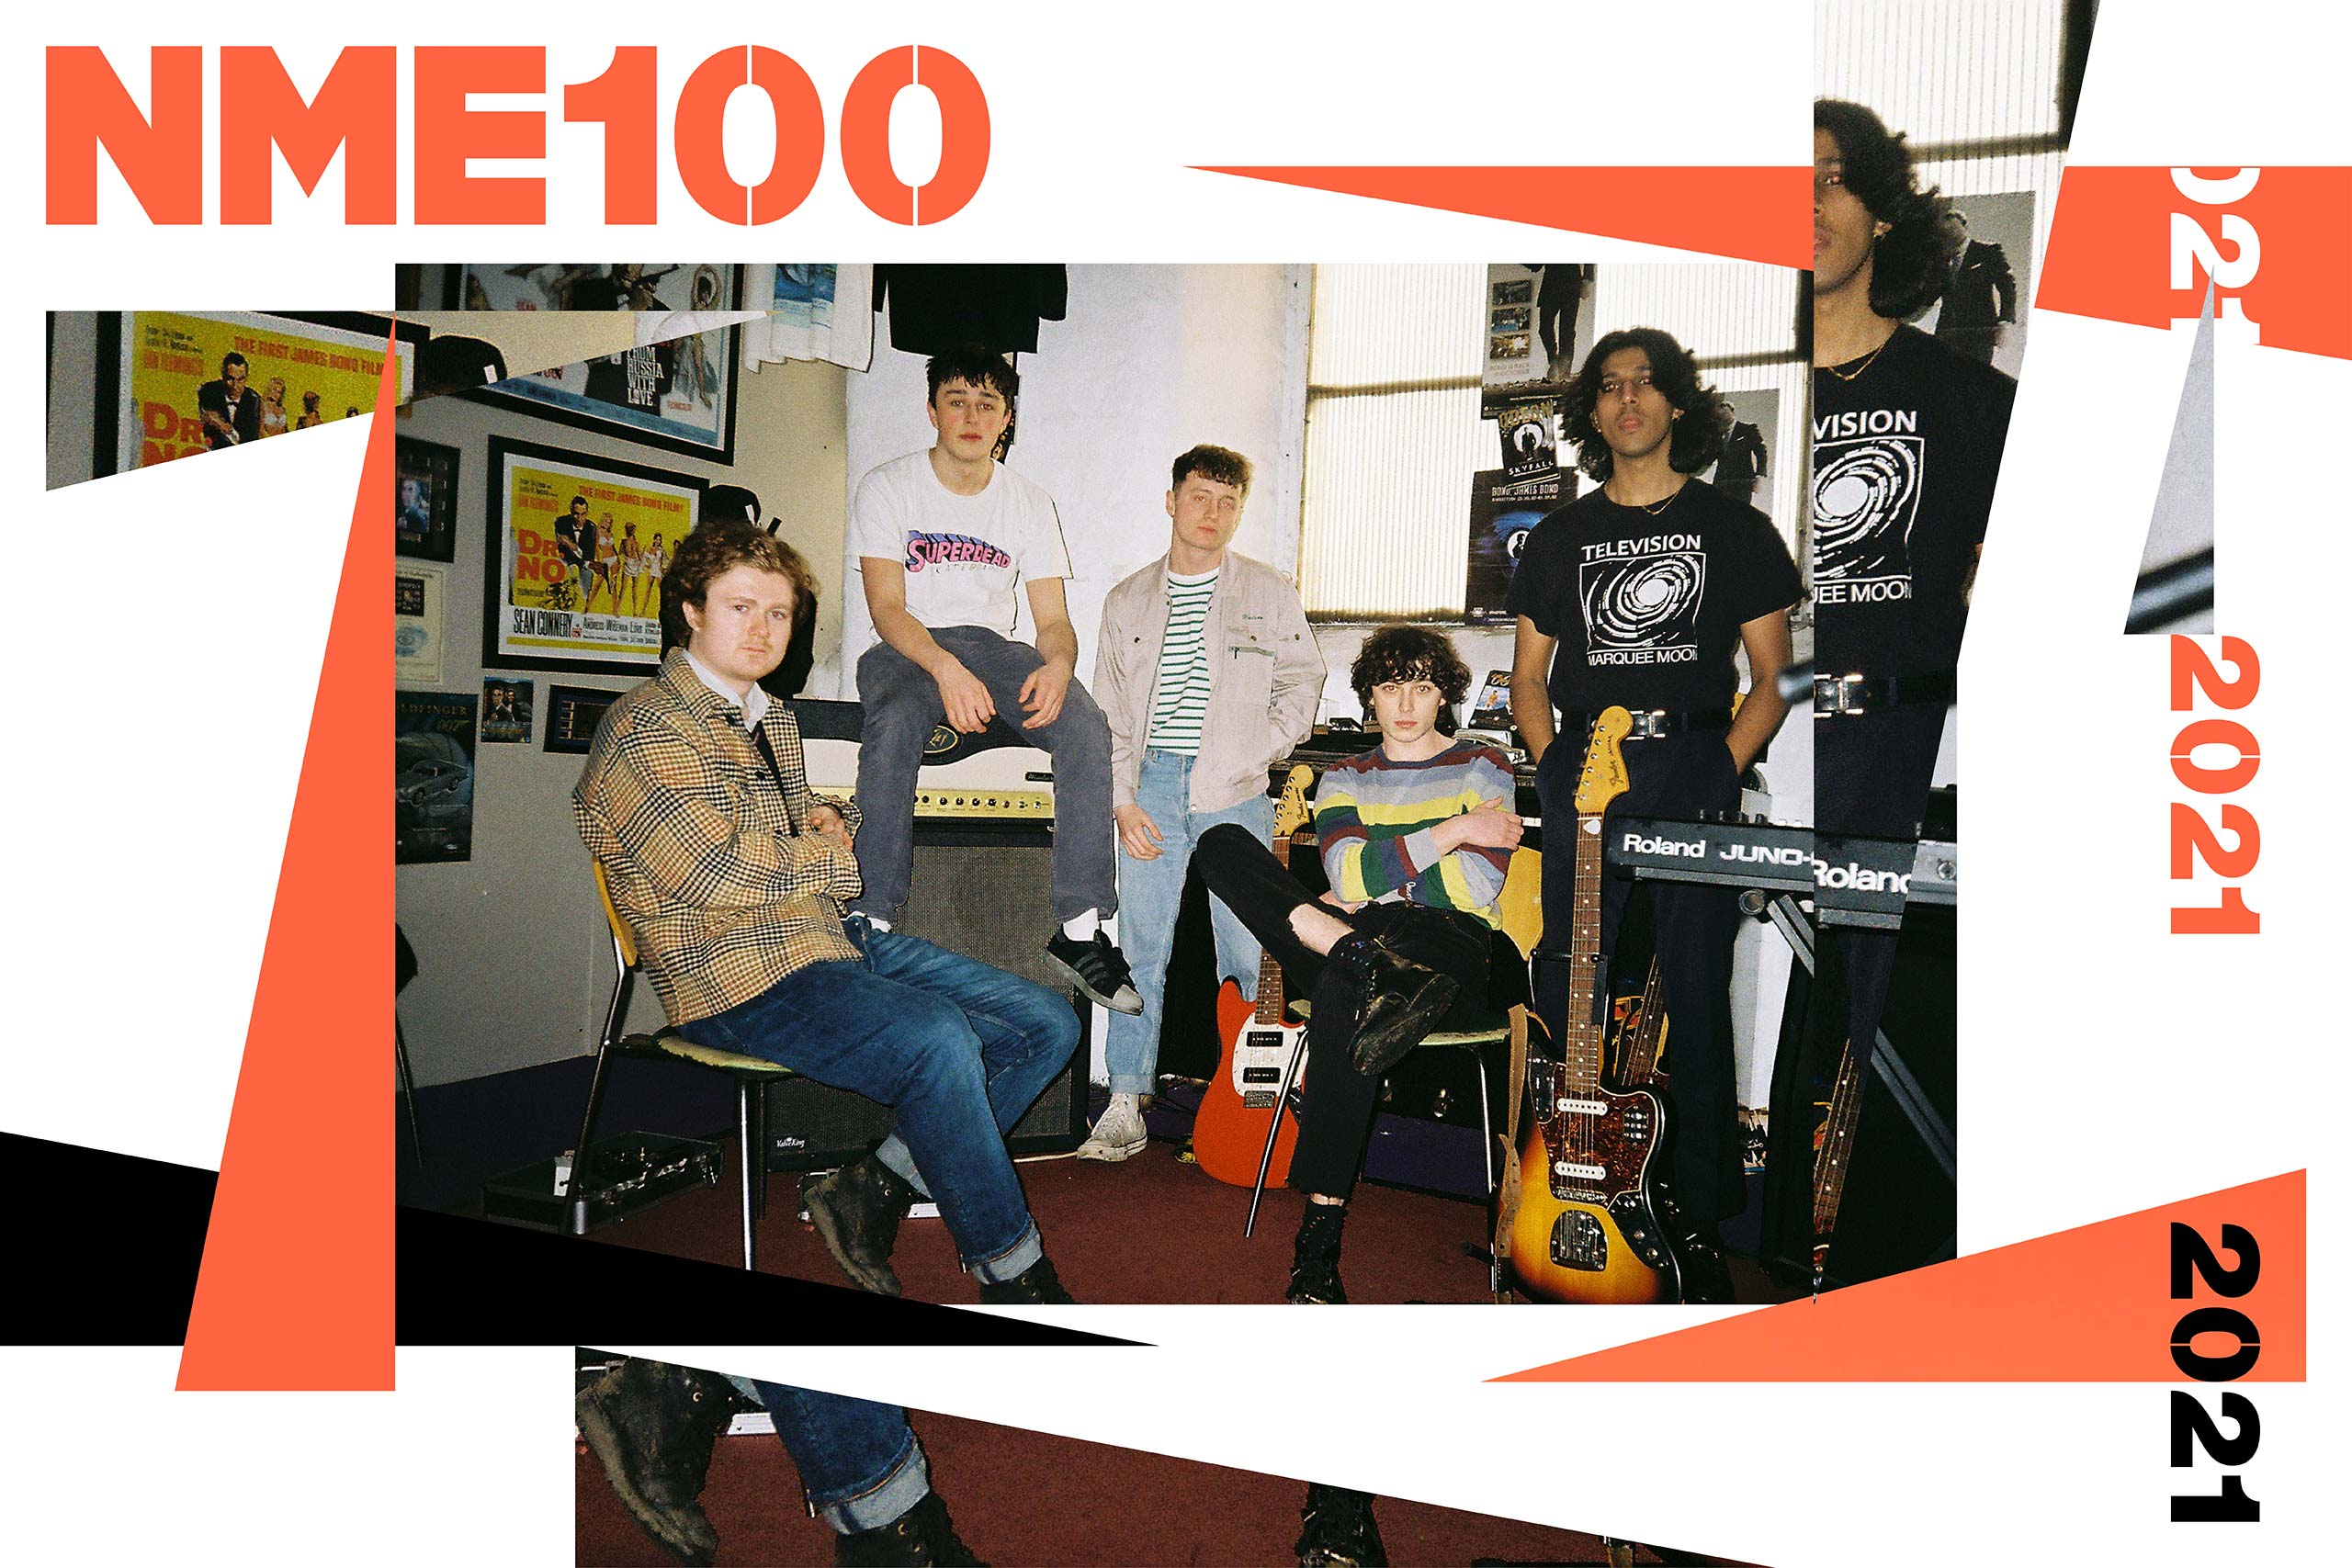 NME 100 the goa express